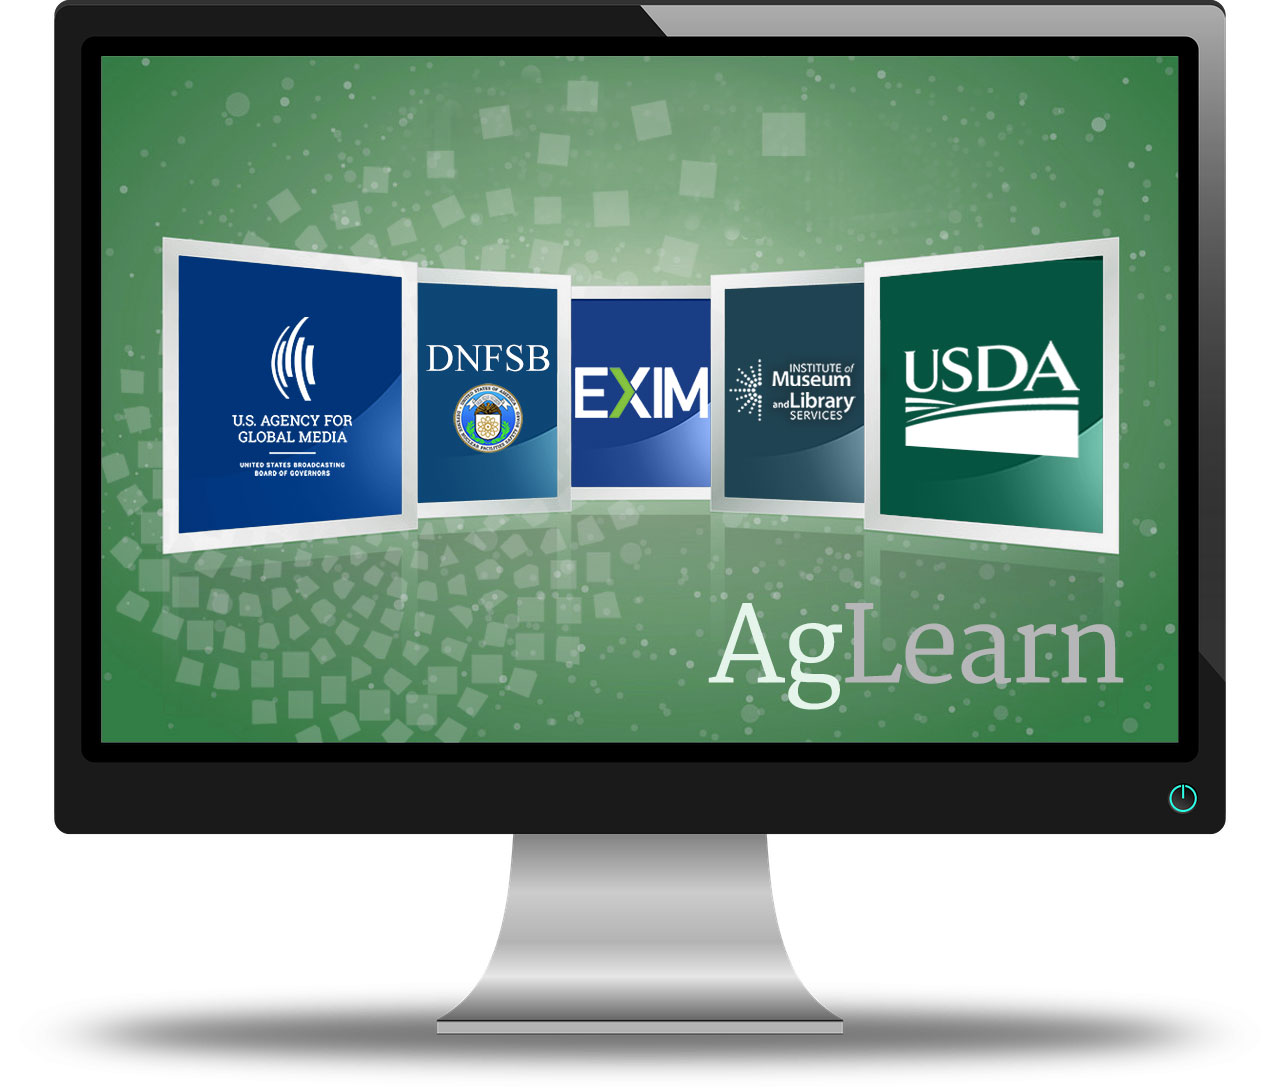 Log in to AgLearn for BBG, DNFSB, EXIM, IMLS and USDA